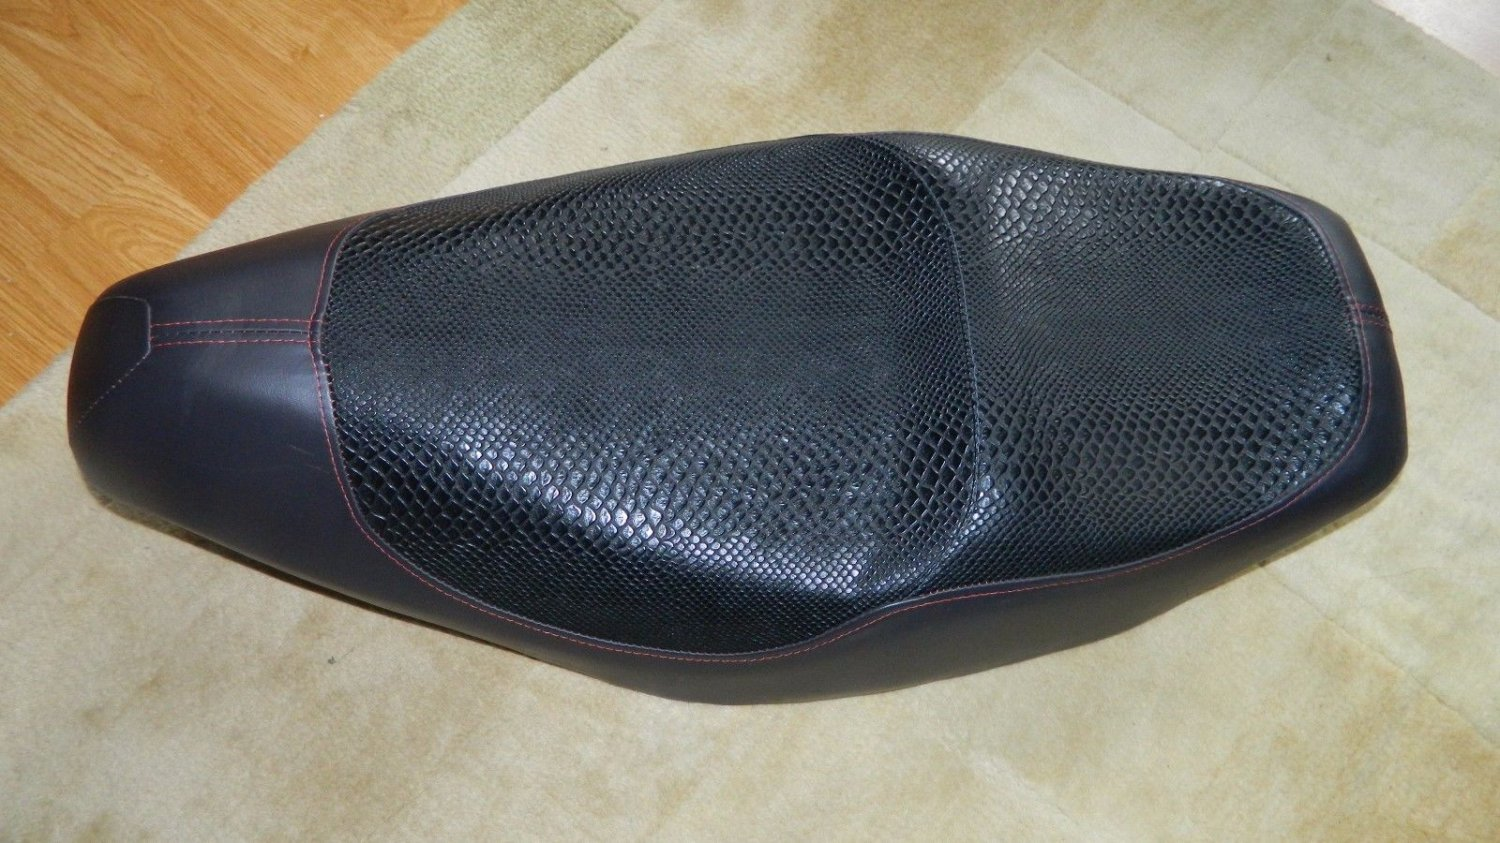 84 HONDA CH125 CH 125 ELITE SEAT, SADDLE